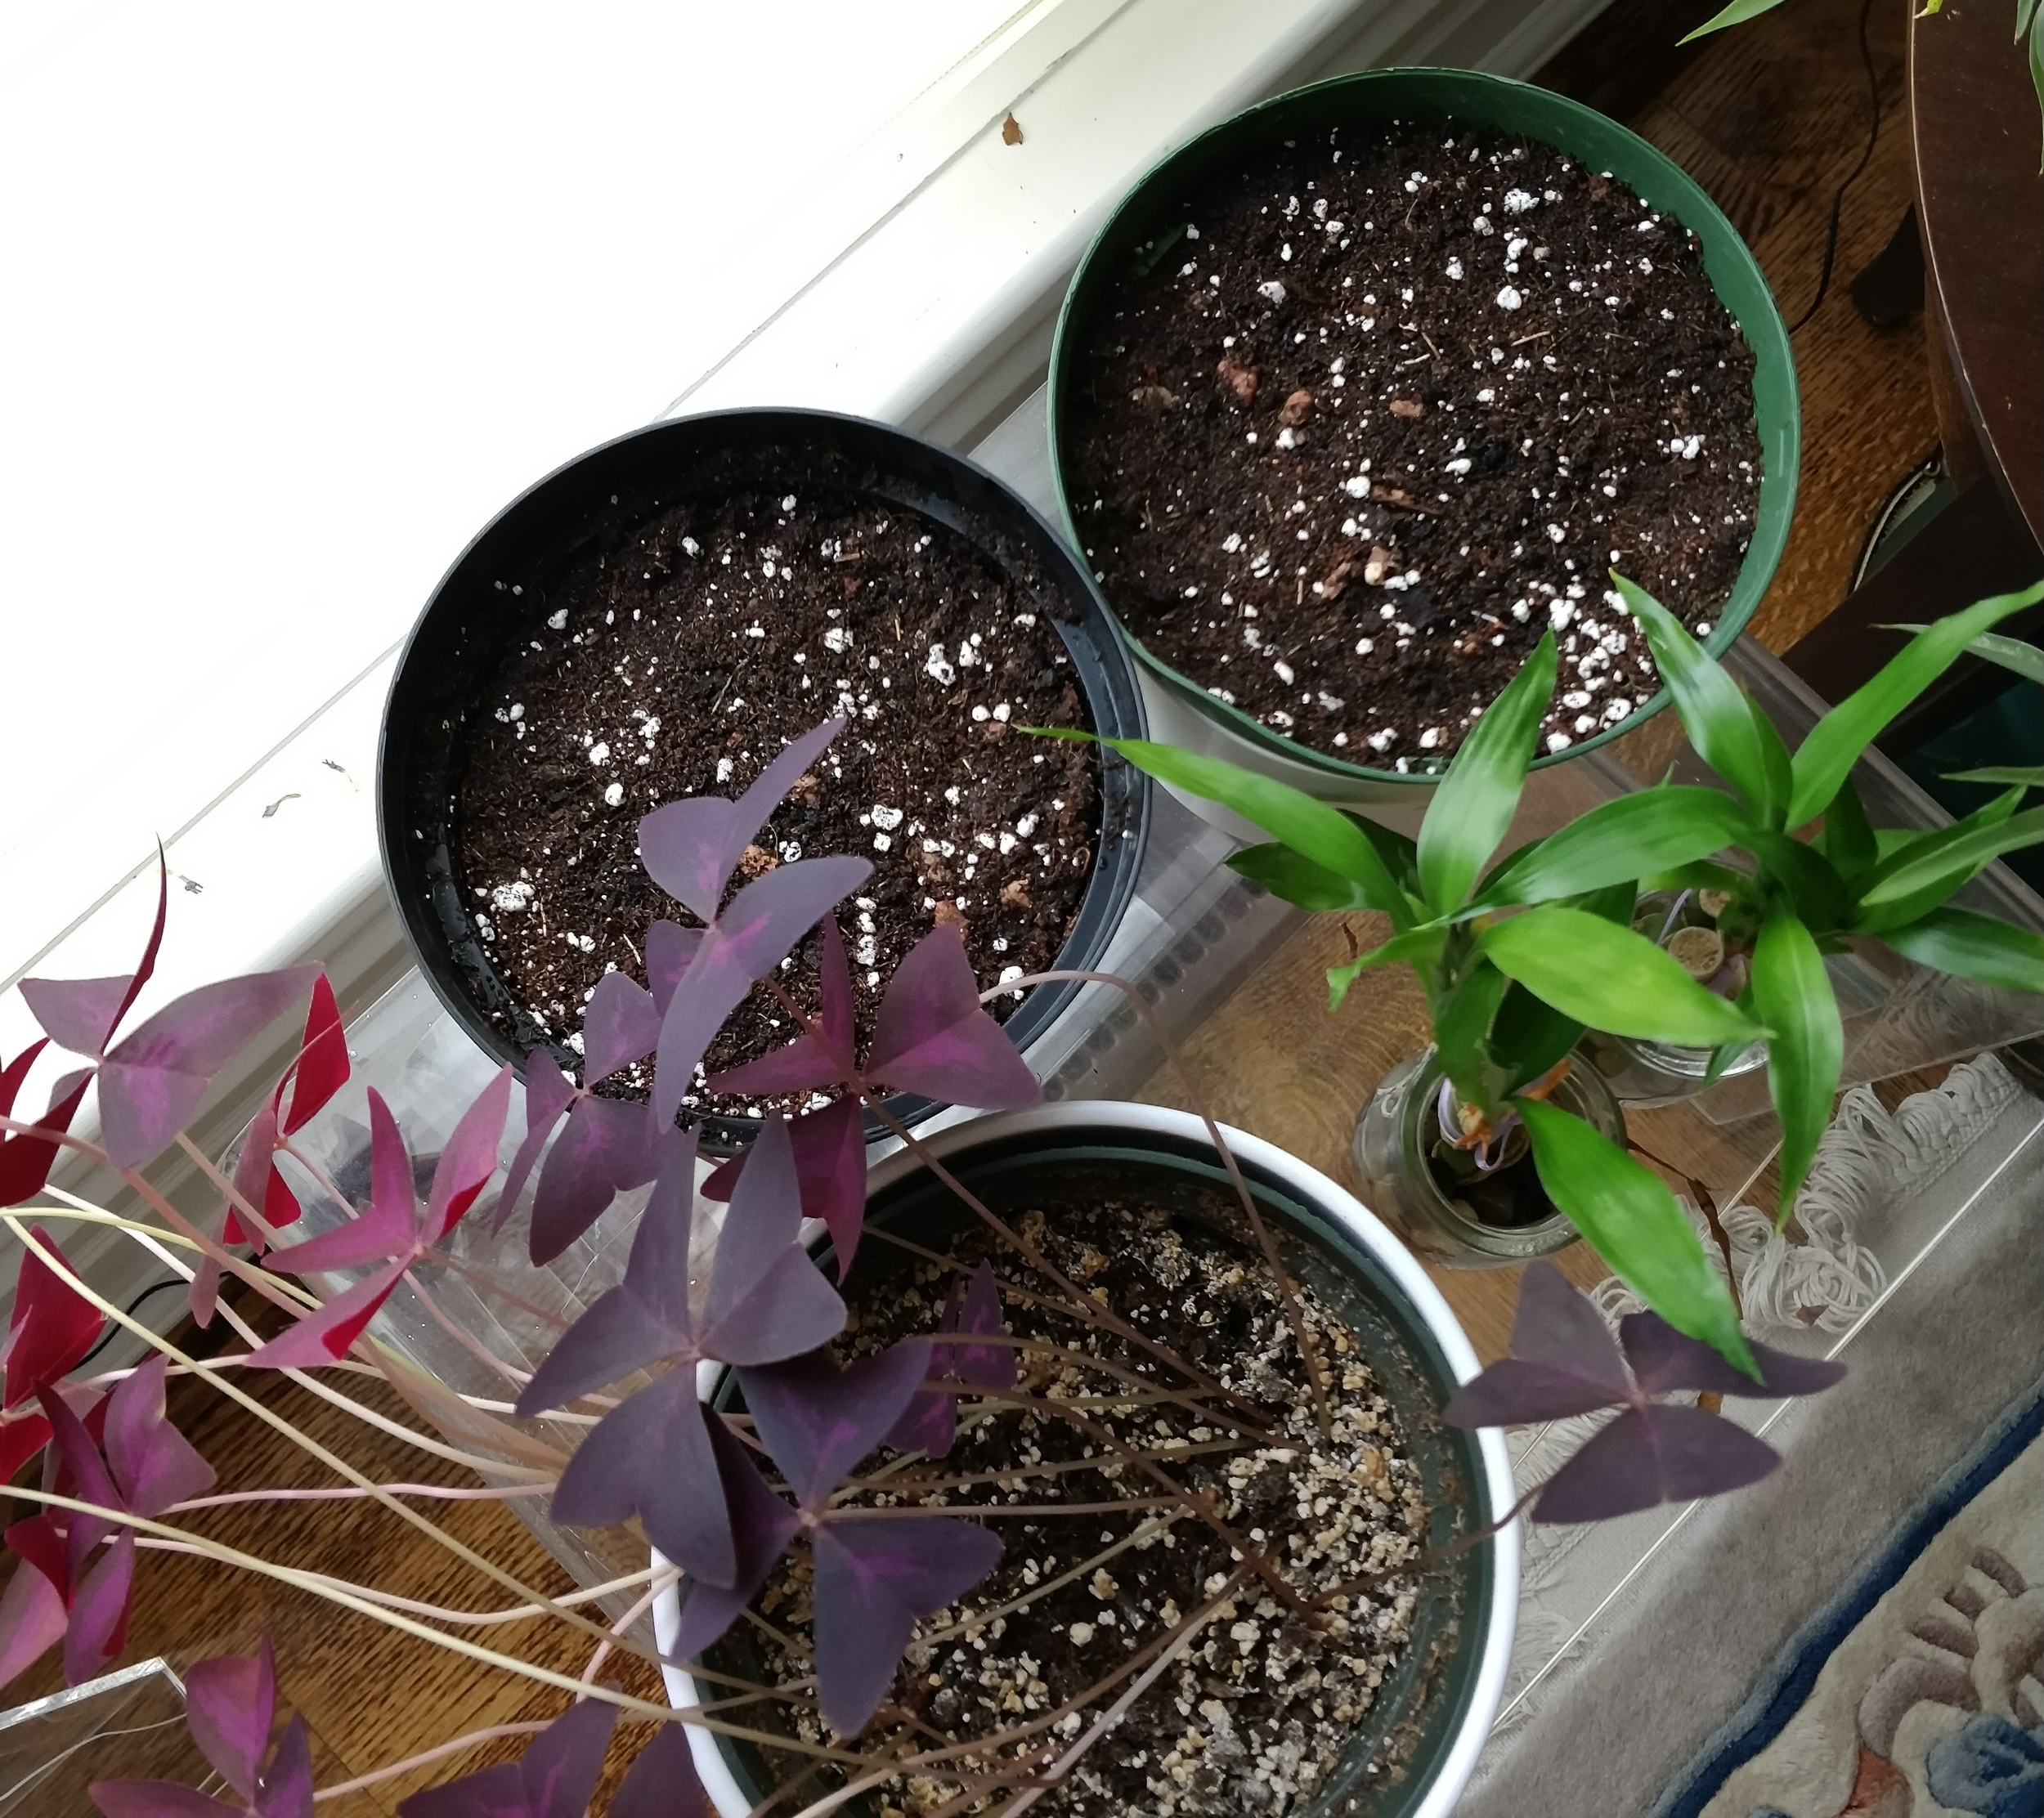 November 11, 2017 - Here are the newly planted oxalis pots sitting next to my currently established purple oxalis plant.  I'm excited to see the new colors/patterns!